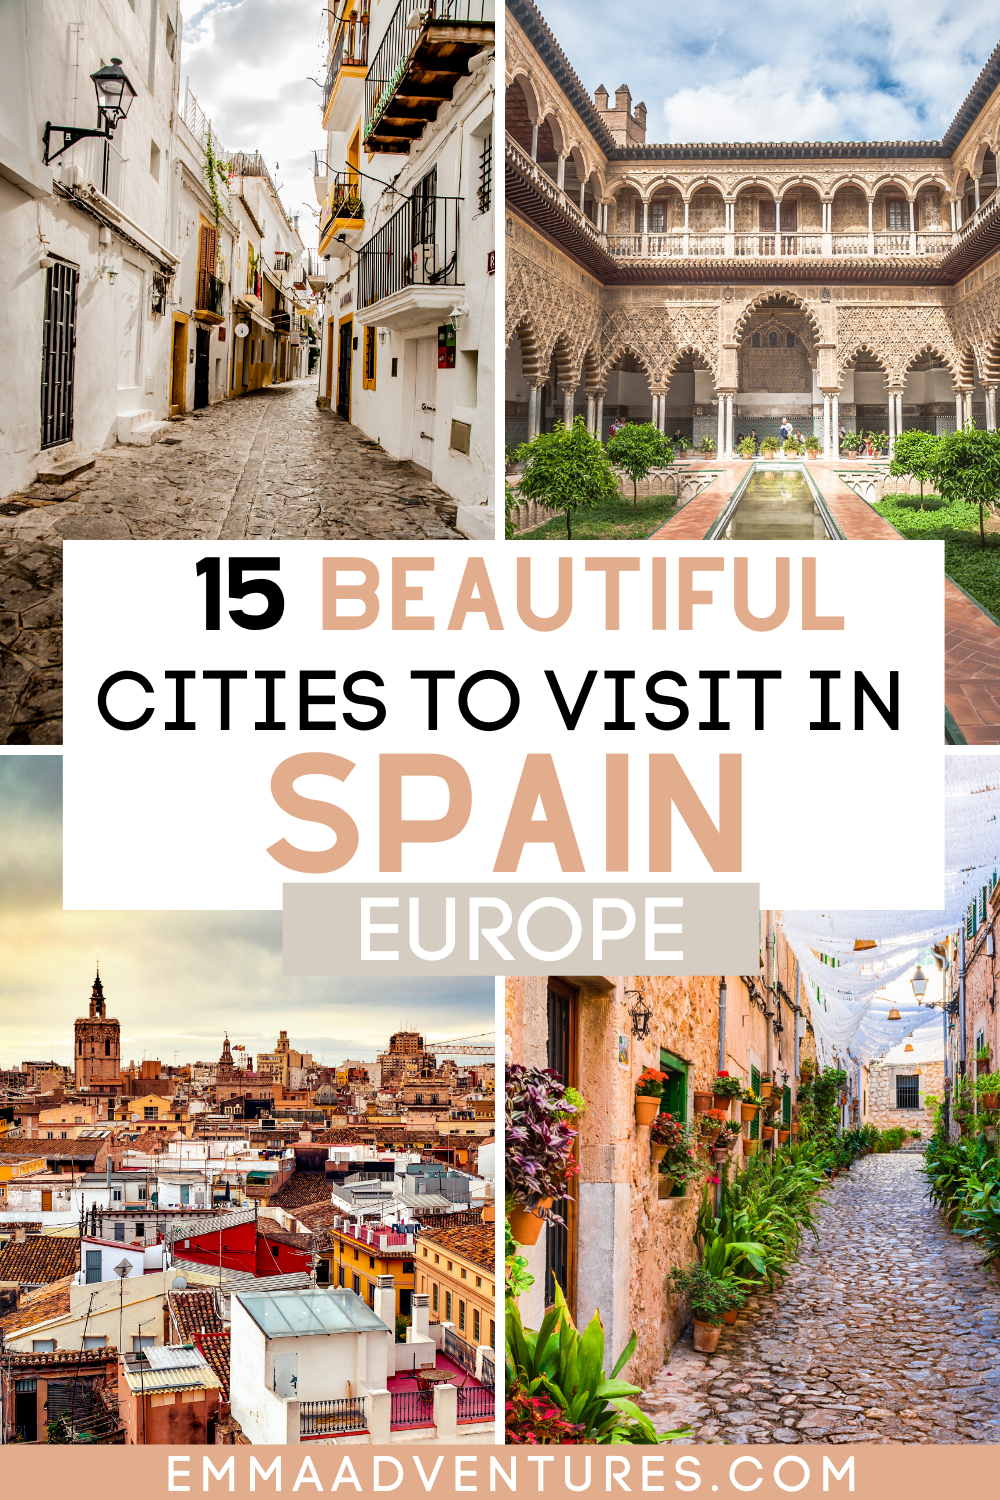 The ultimate Spain travel bucketlist! These are 15 of the best places to visit in Spain! The top cities to see in Spain that you can't miss! Your ultimate guide to everything to see and do in Spain! Spain travel guide, best places in Spain, beautiful places in Spain, best cities in Spain, what to do in Spain.